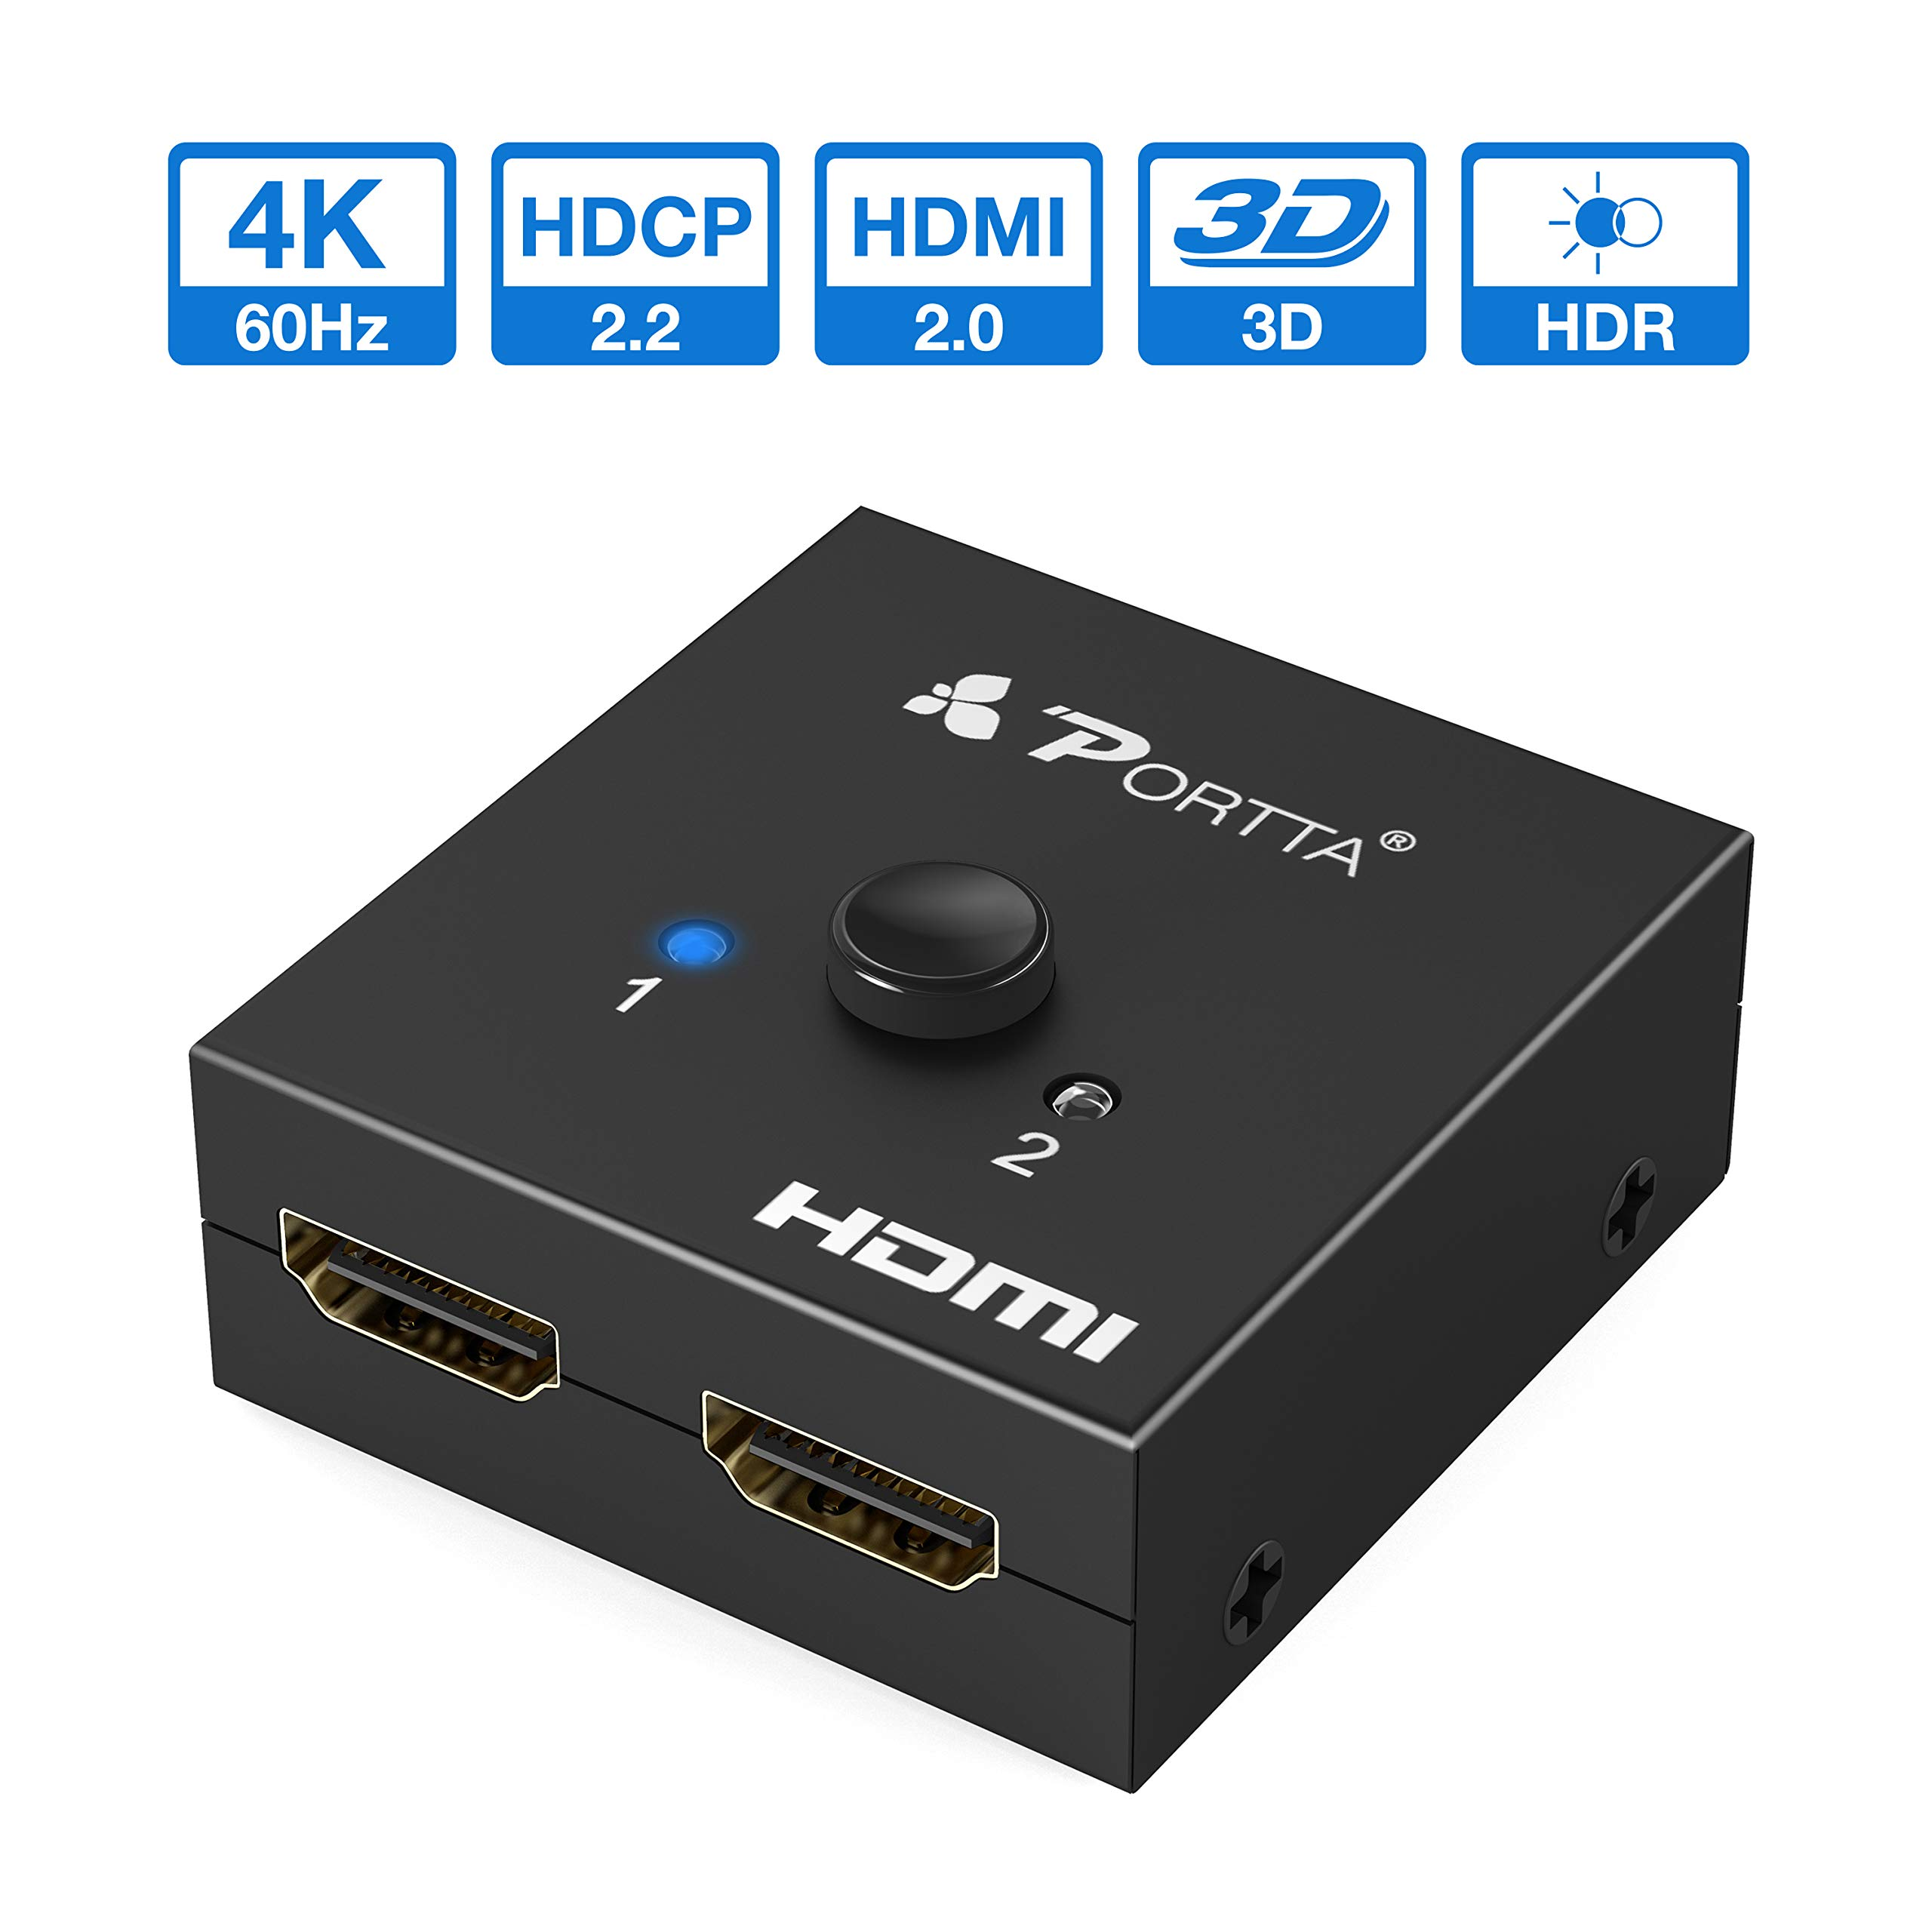 Amazon Com Portta Hdmi Switch 4k 60hz Hdmi Splitter Bi Directional Hdmi Switcher Splitter 2 In 1 Out Or 1 In 2 Out For Blu Ray Player Roku Tv Stick Nintendo Switch Xbox Ps4 Hdtv